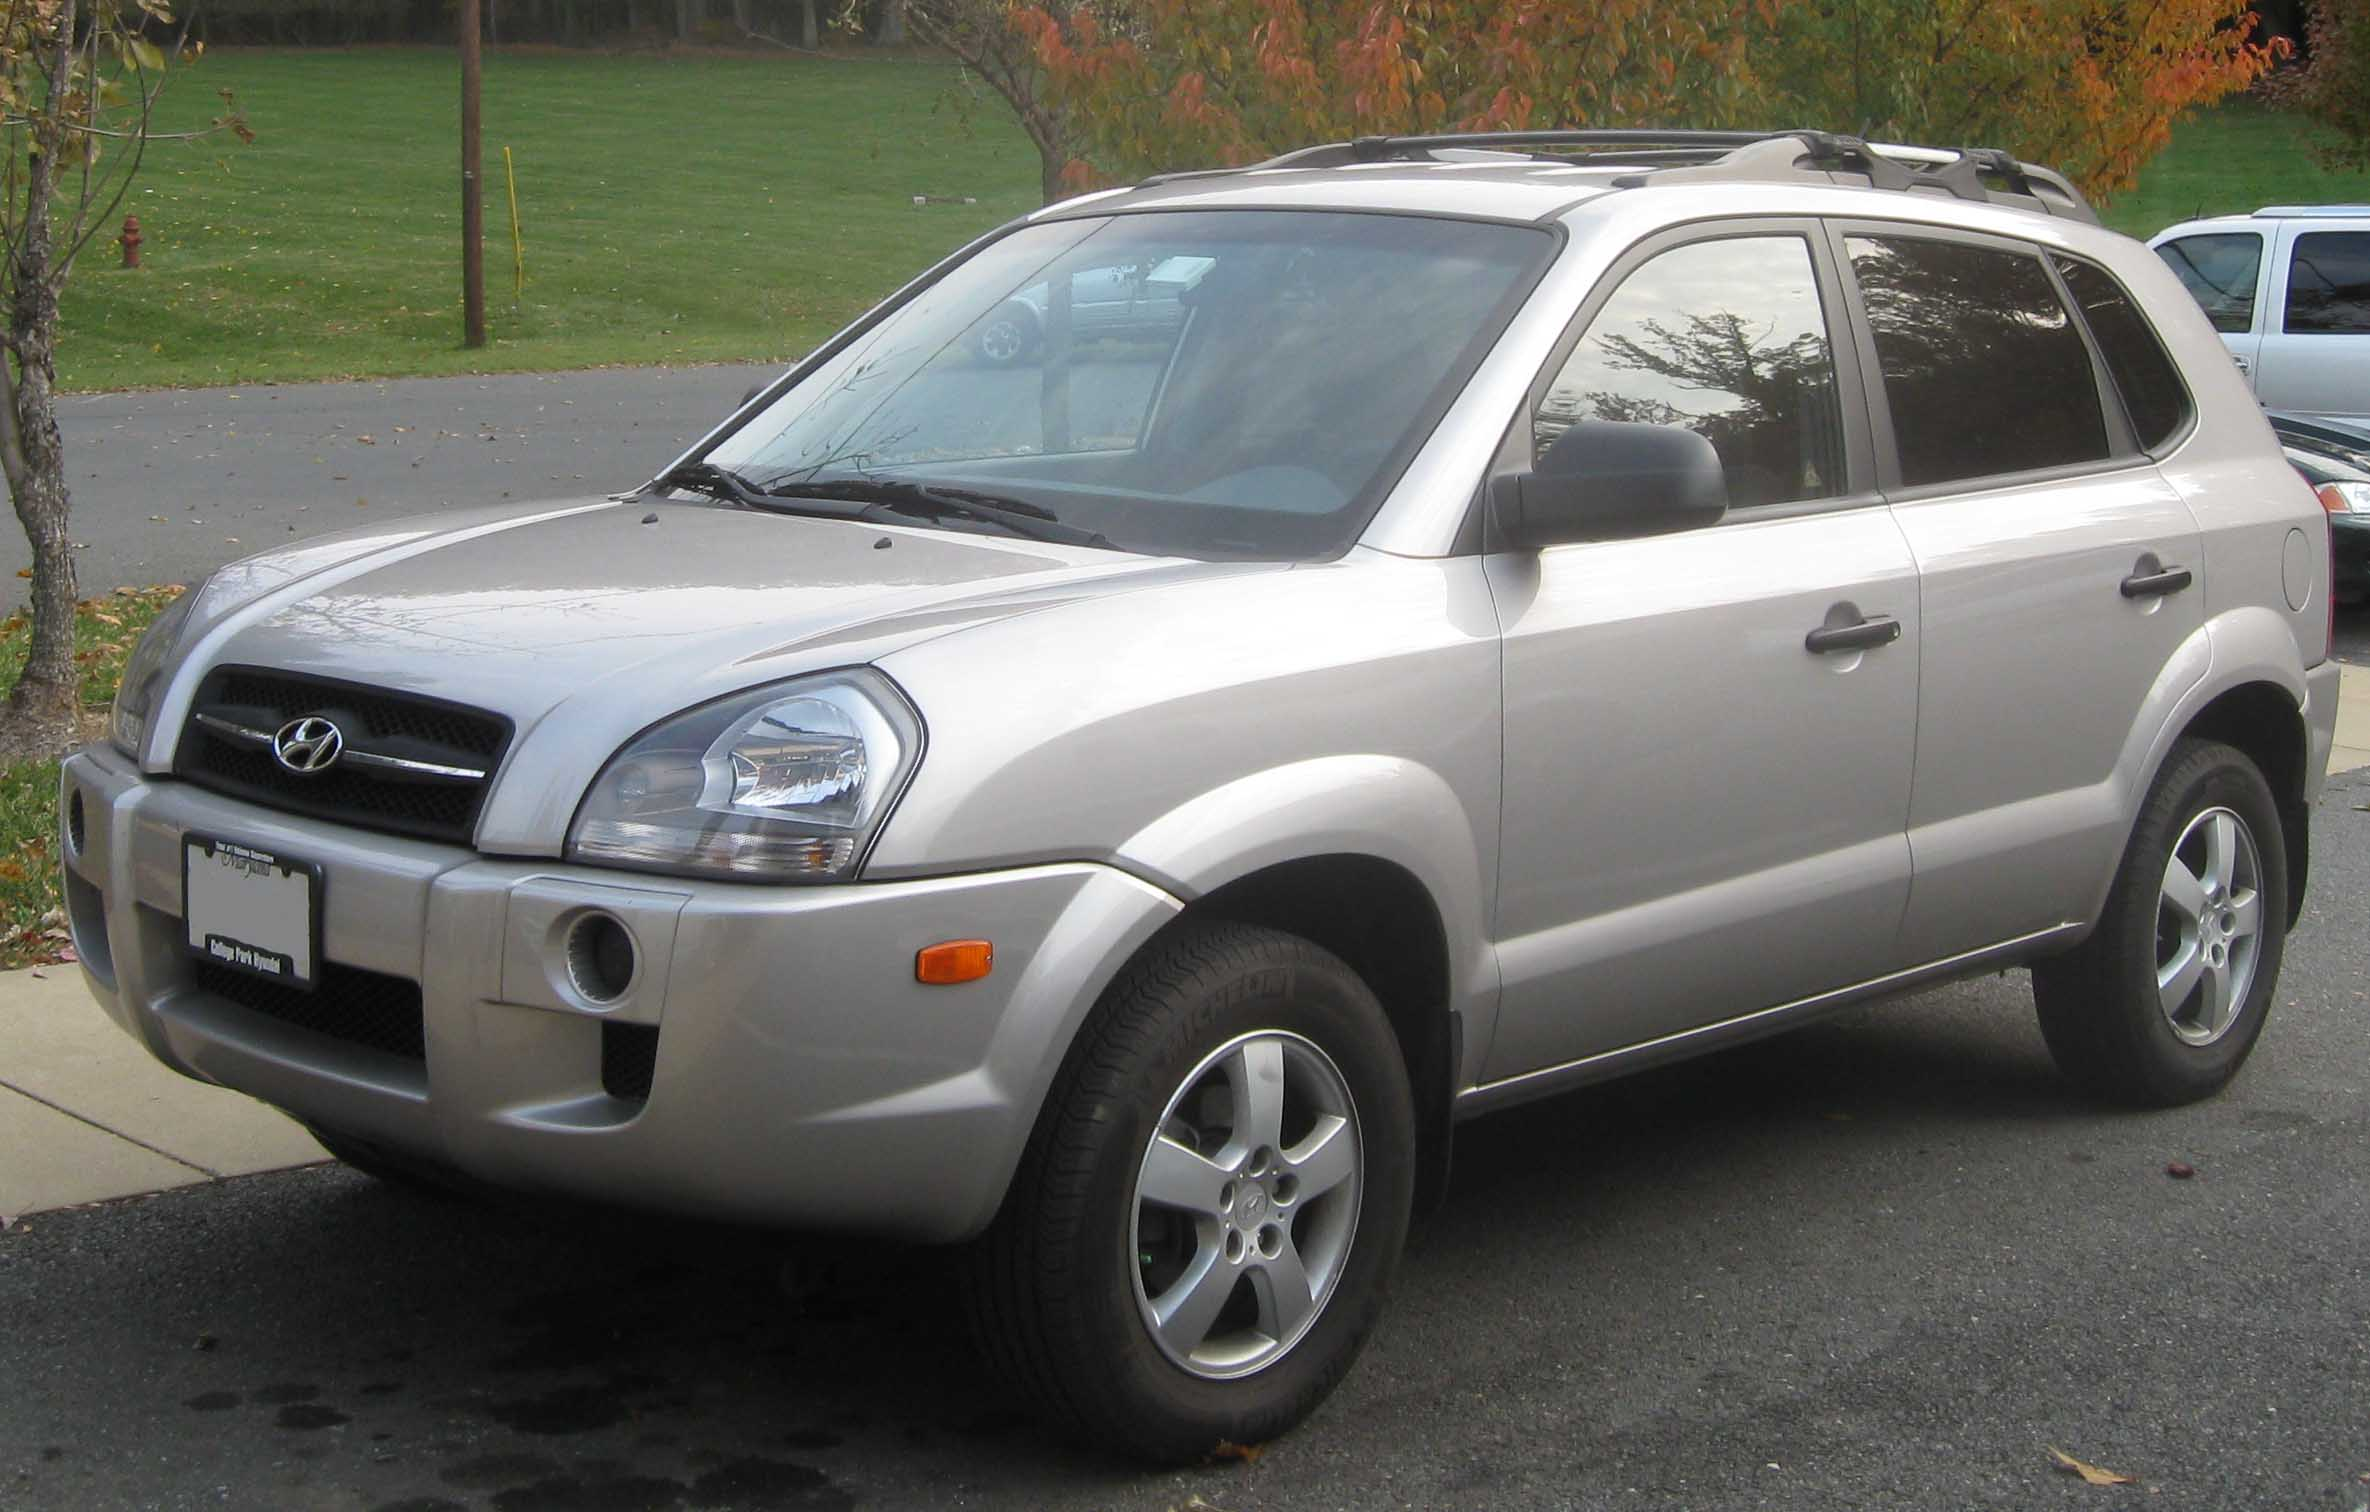 Hyundai Tucson 2004 Review Amazing Pictures And Images Look At The Car